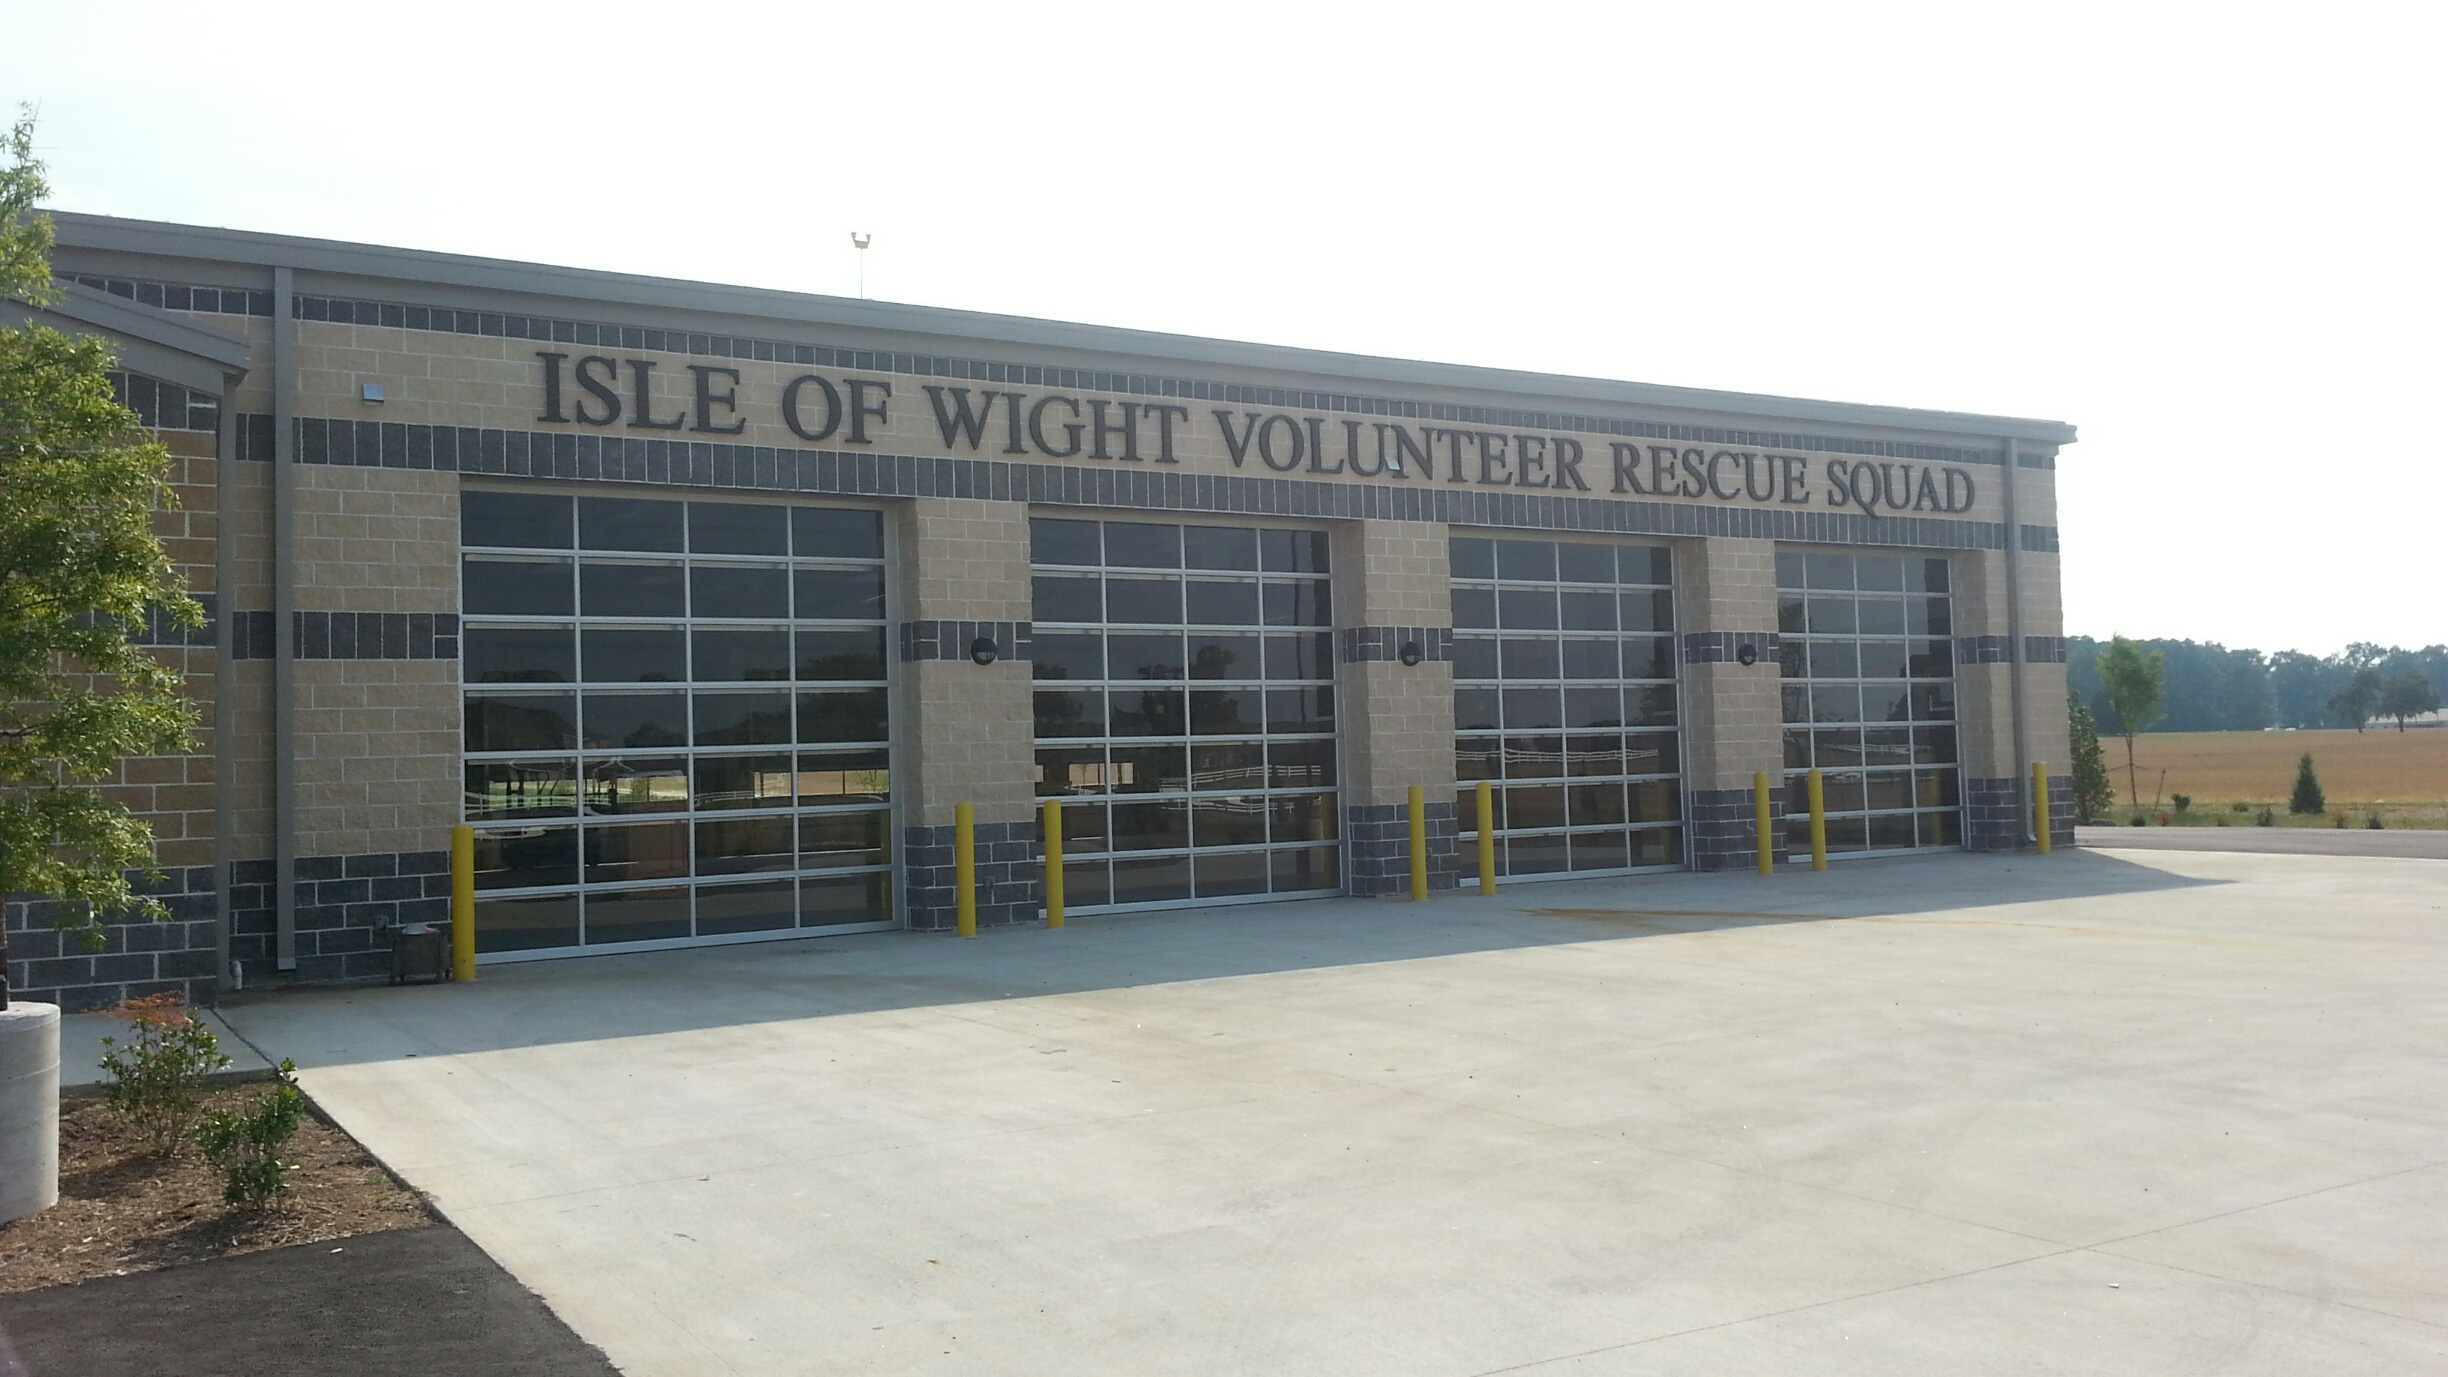 Charming ... Overhead Doors, Insulated Full Vision Sectional Doors At Fire Station    Isle Of Wight, VA   Amelia ...